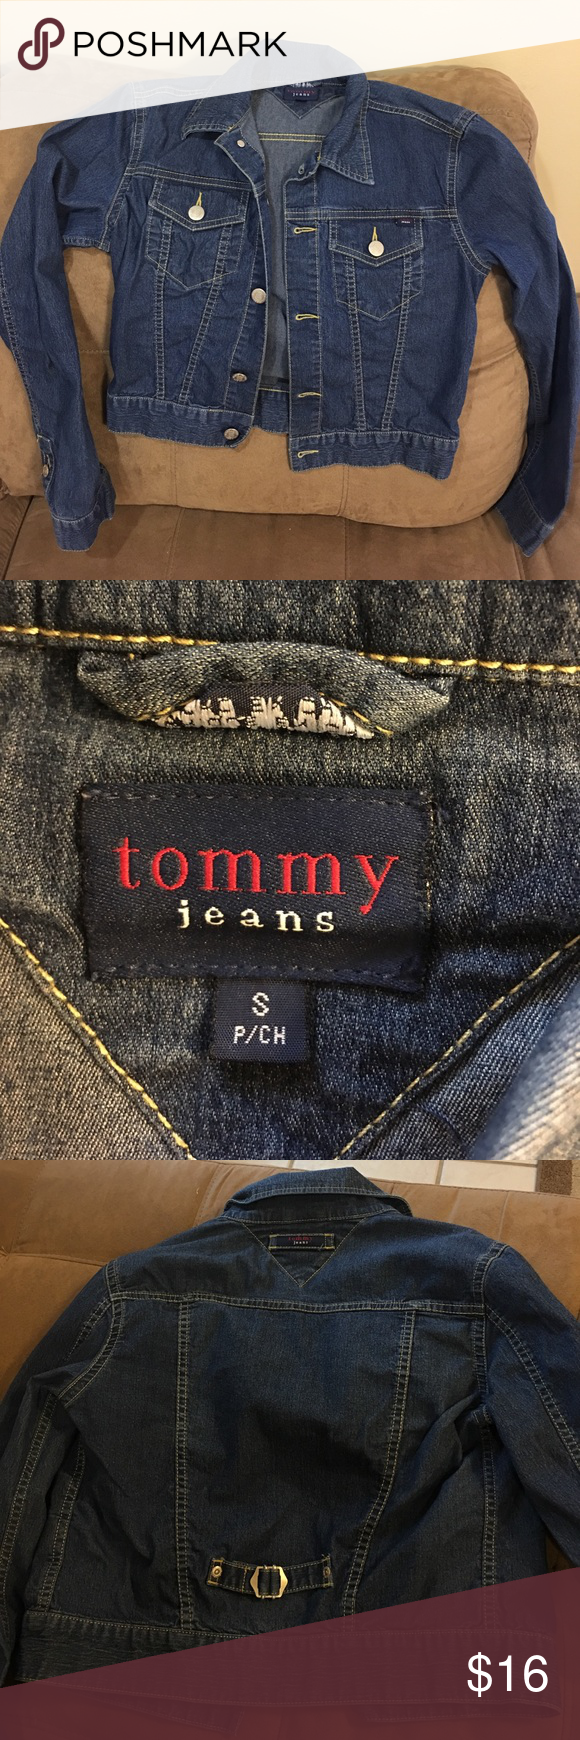 Denim jacket Offer 20% discount when bundling items while paying one shipping fee. Comes from a smoke free home. Tommy Hilfiger Jackets & Coats Jean Jackets